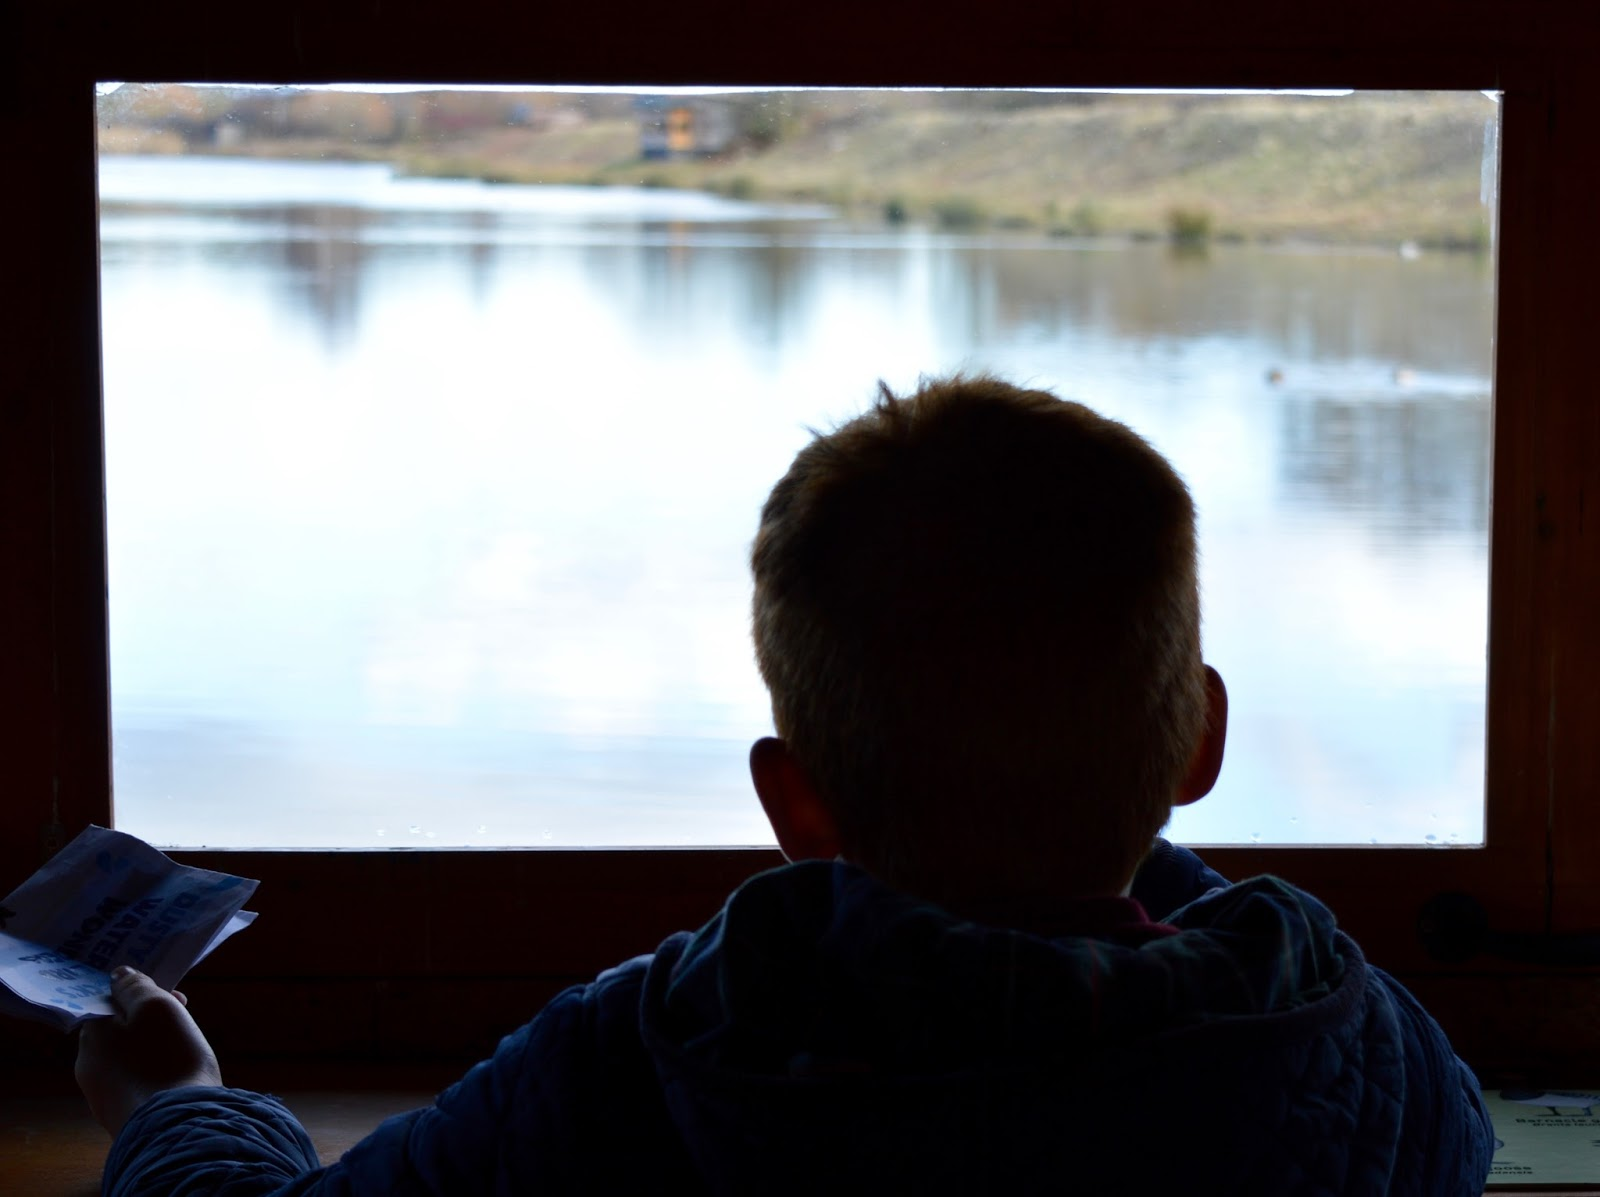 WWT Washington Wetland Centre | An Accessible North East Day Out for the Whole Family - bird spotting from bird hide